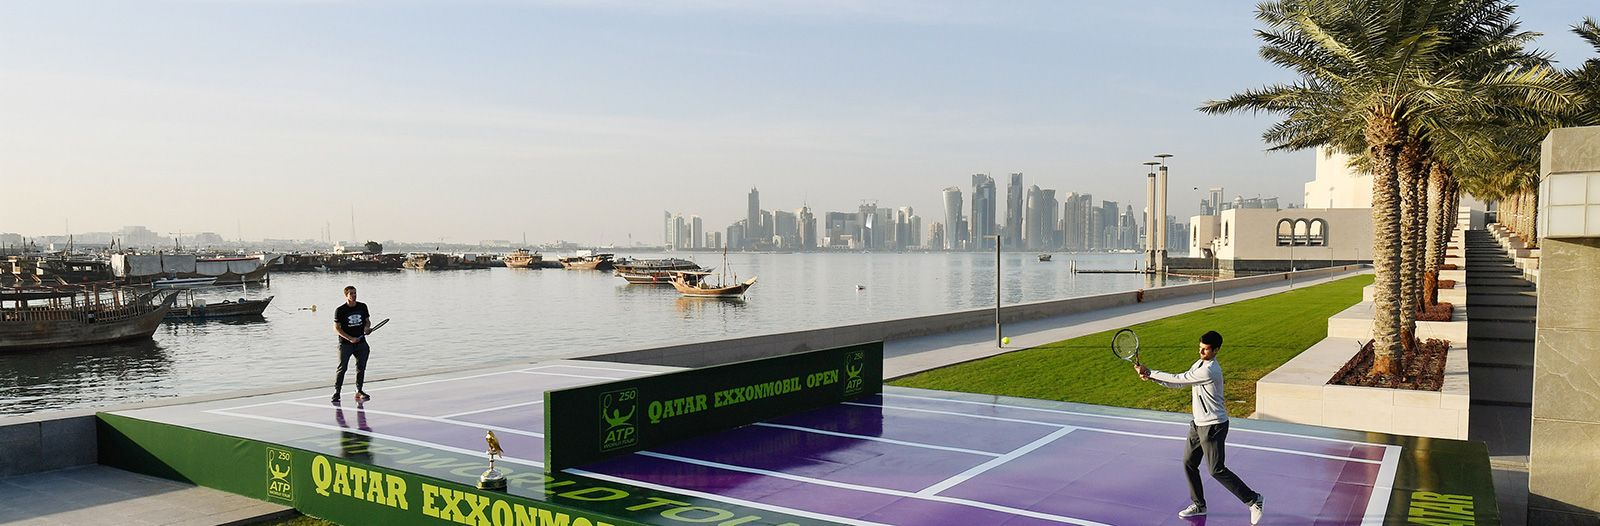 All You Need To Know For The Qatar ExxonMobil Open 2020